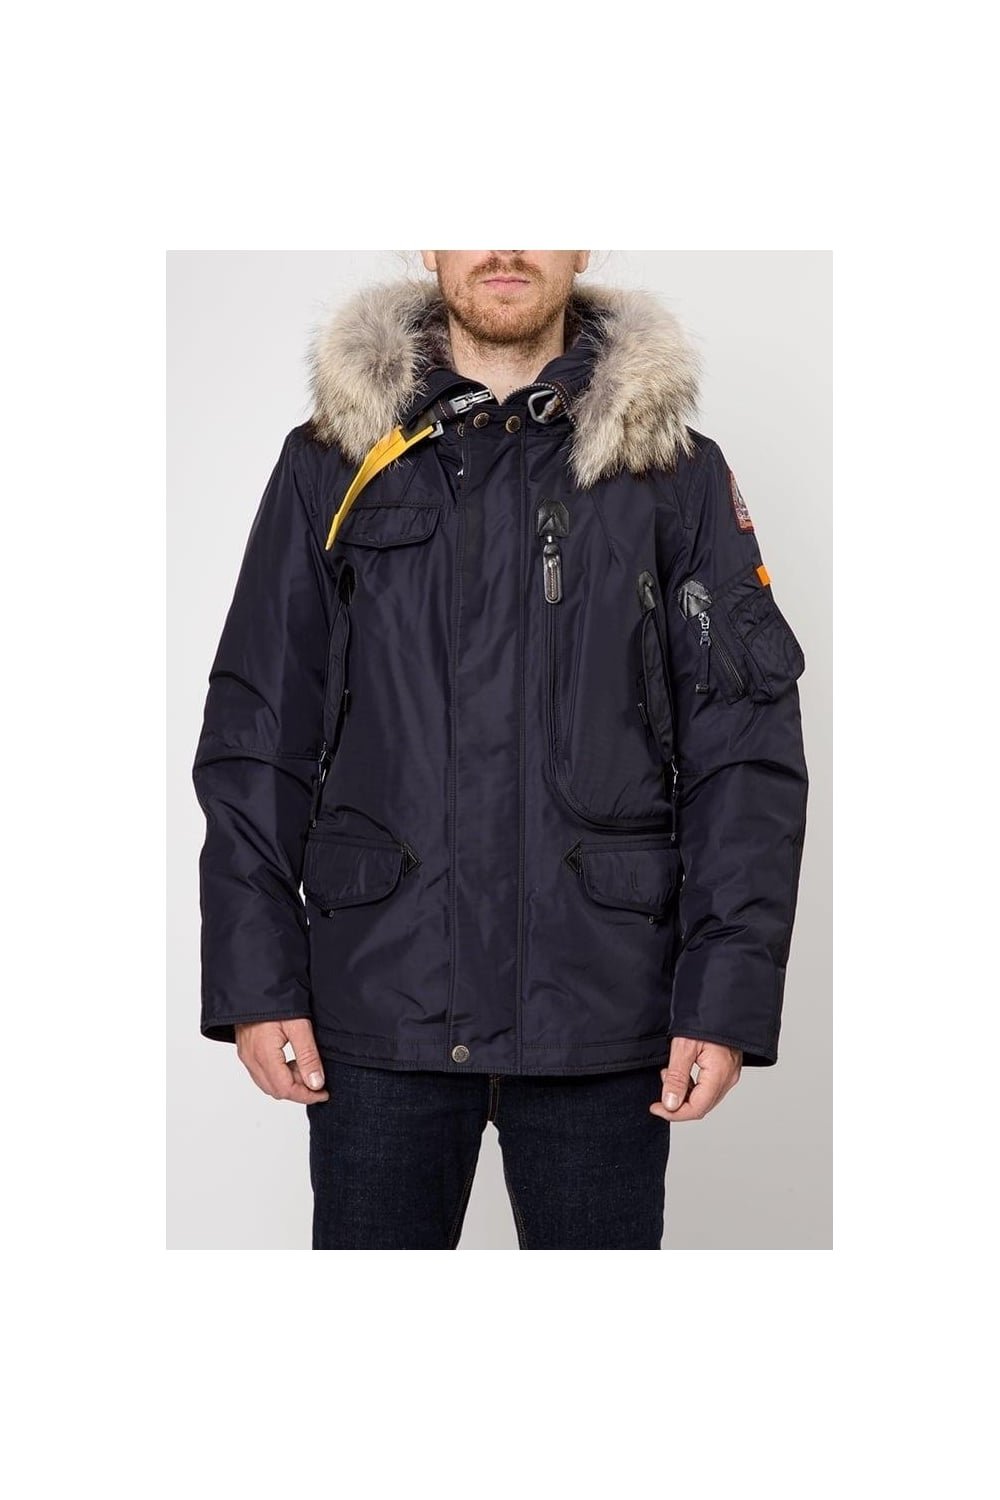 Right Hand Man Coat Navy